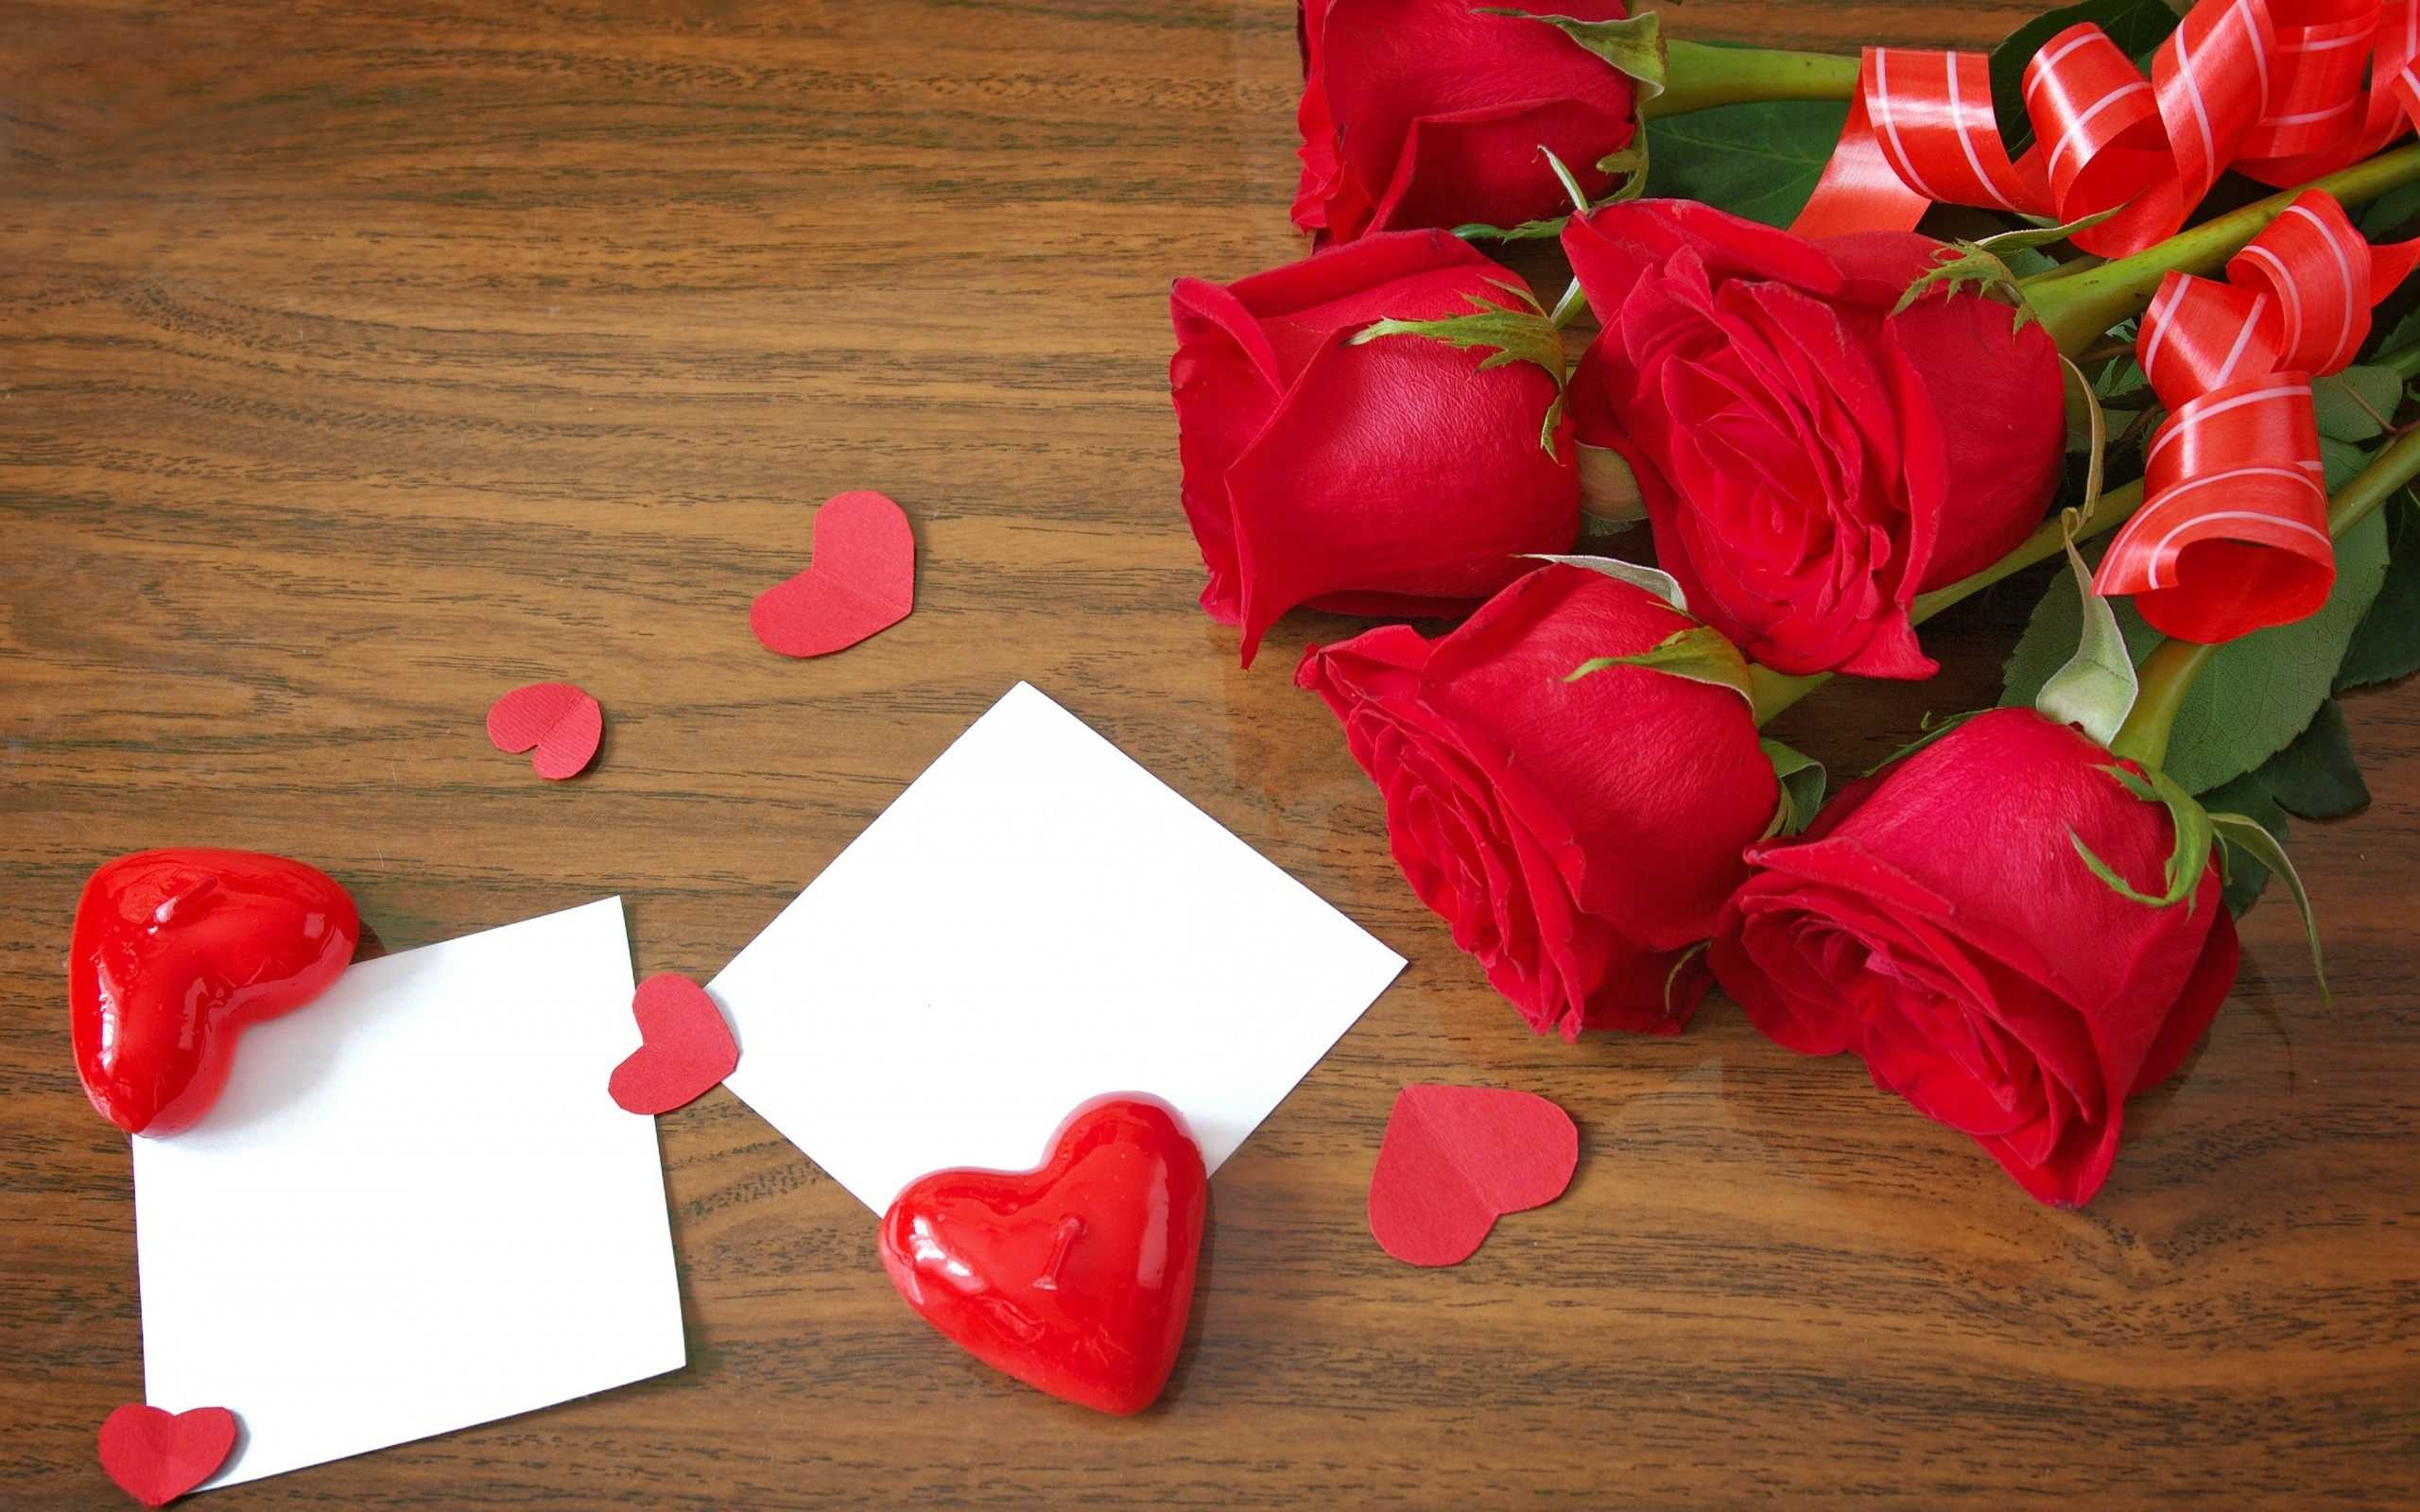 Download-images-of-romantic-love-flowers-Love-Flowers-Amp-Romantic-Flowers-Best-Colle-wallpaper-wpc9004425